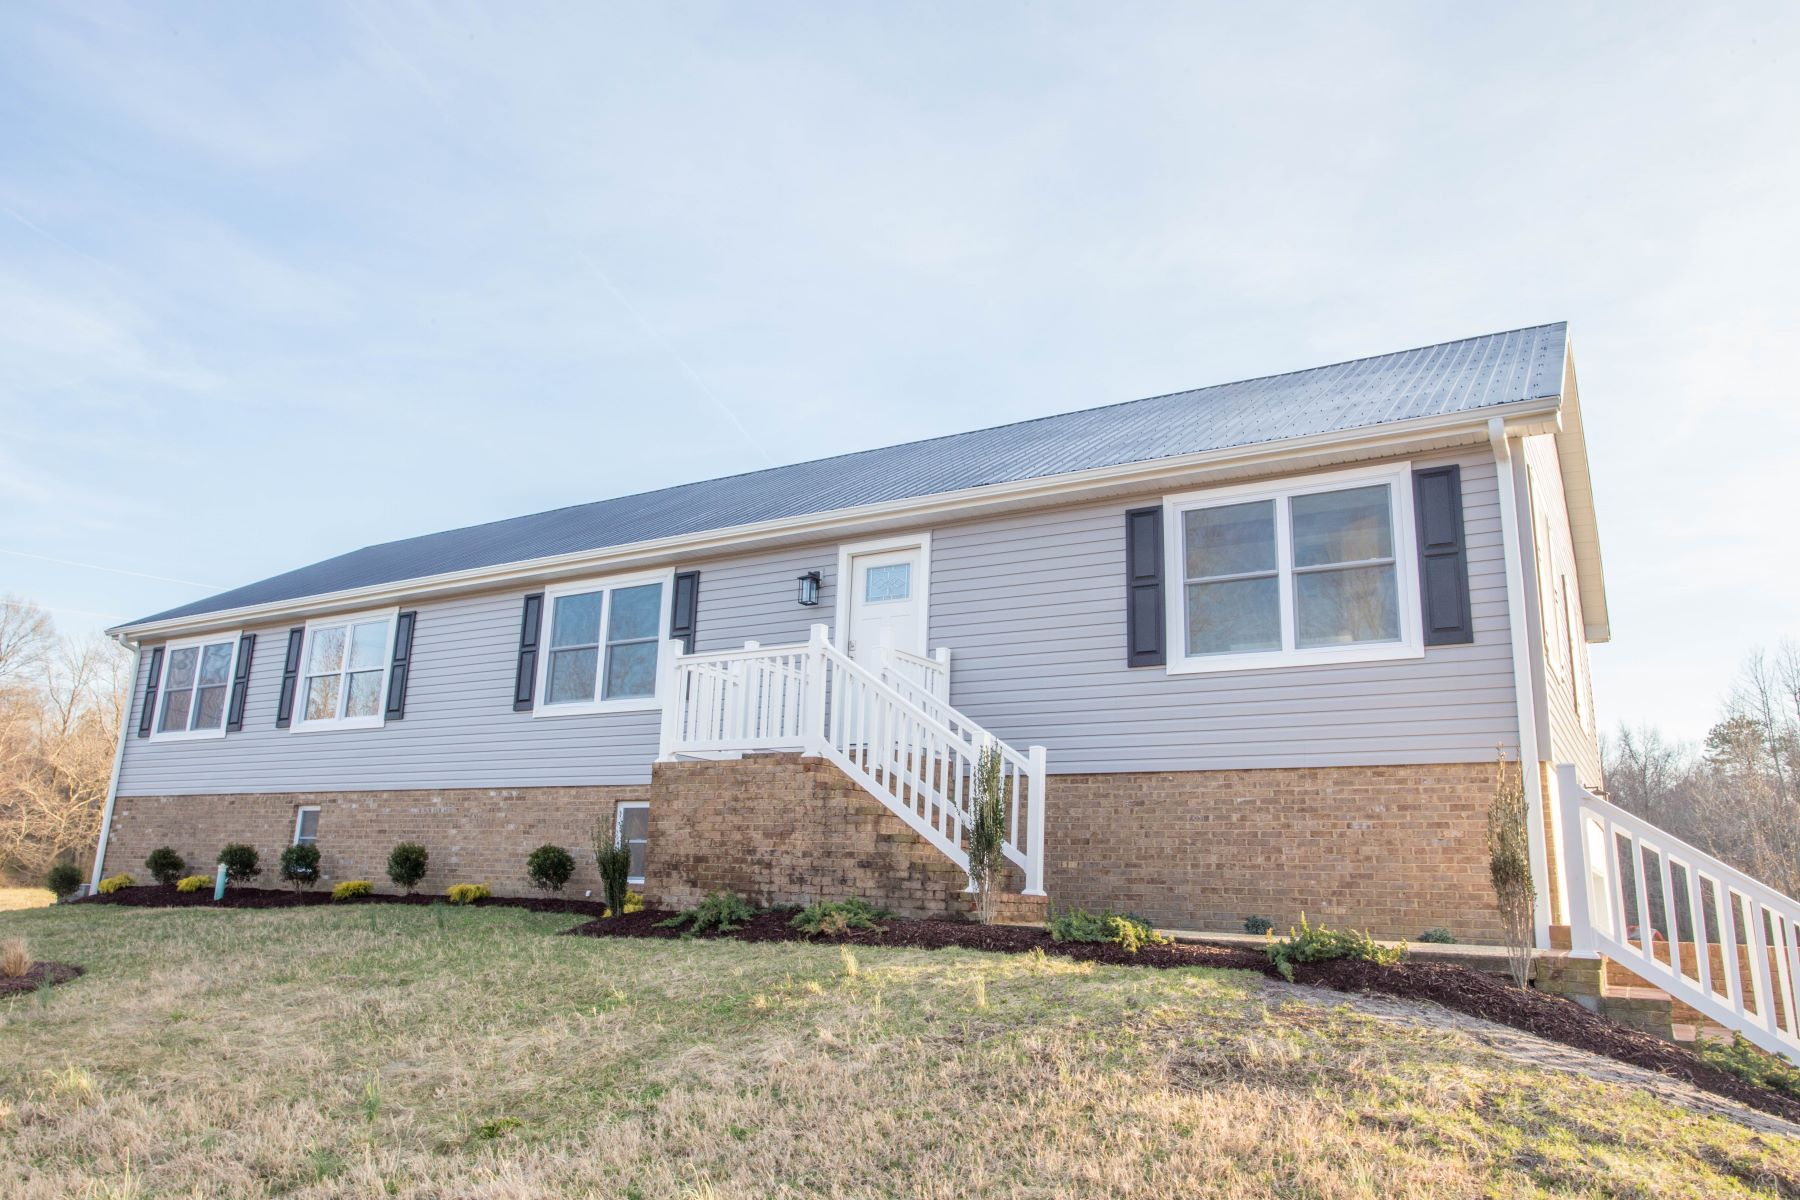 Single Family Home for Sale at 17028 Wilson Hill Rd , Georgetown, DE 19947 17028 Wilson Hill Rd, Georgetown, Delaware 19947 United States